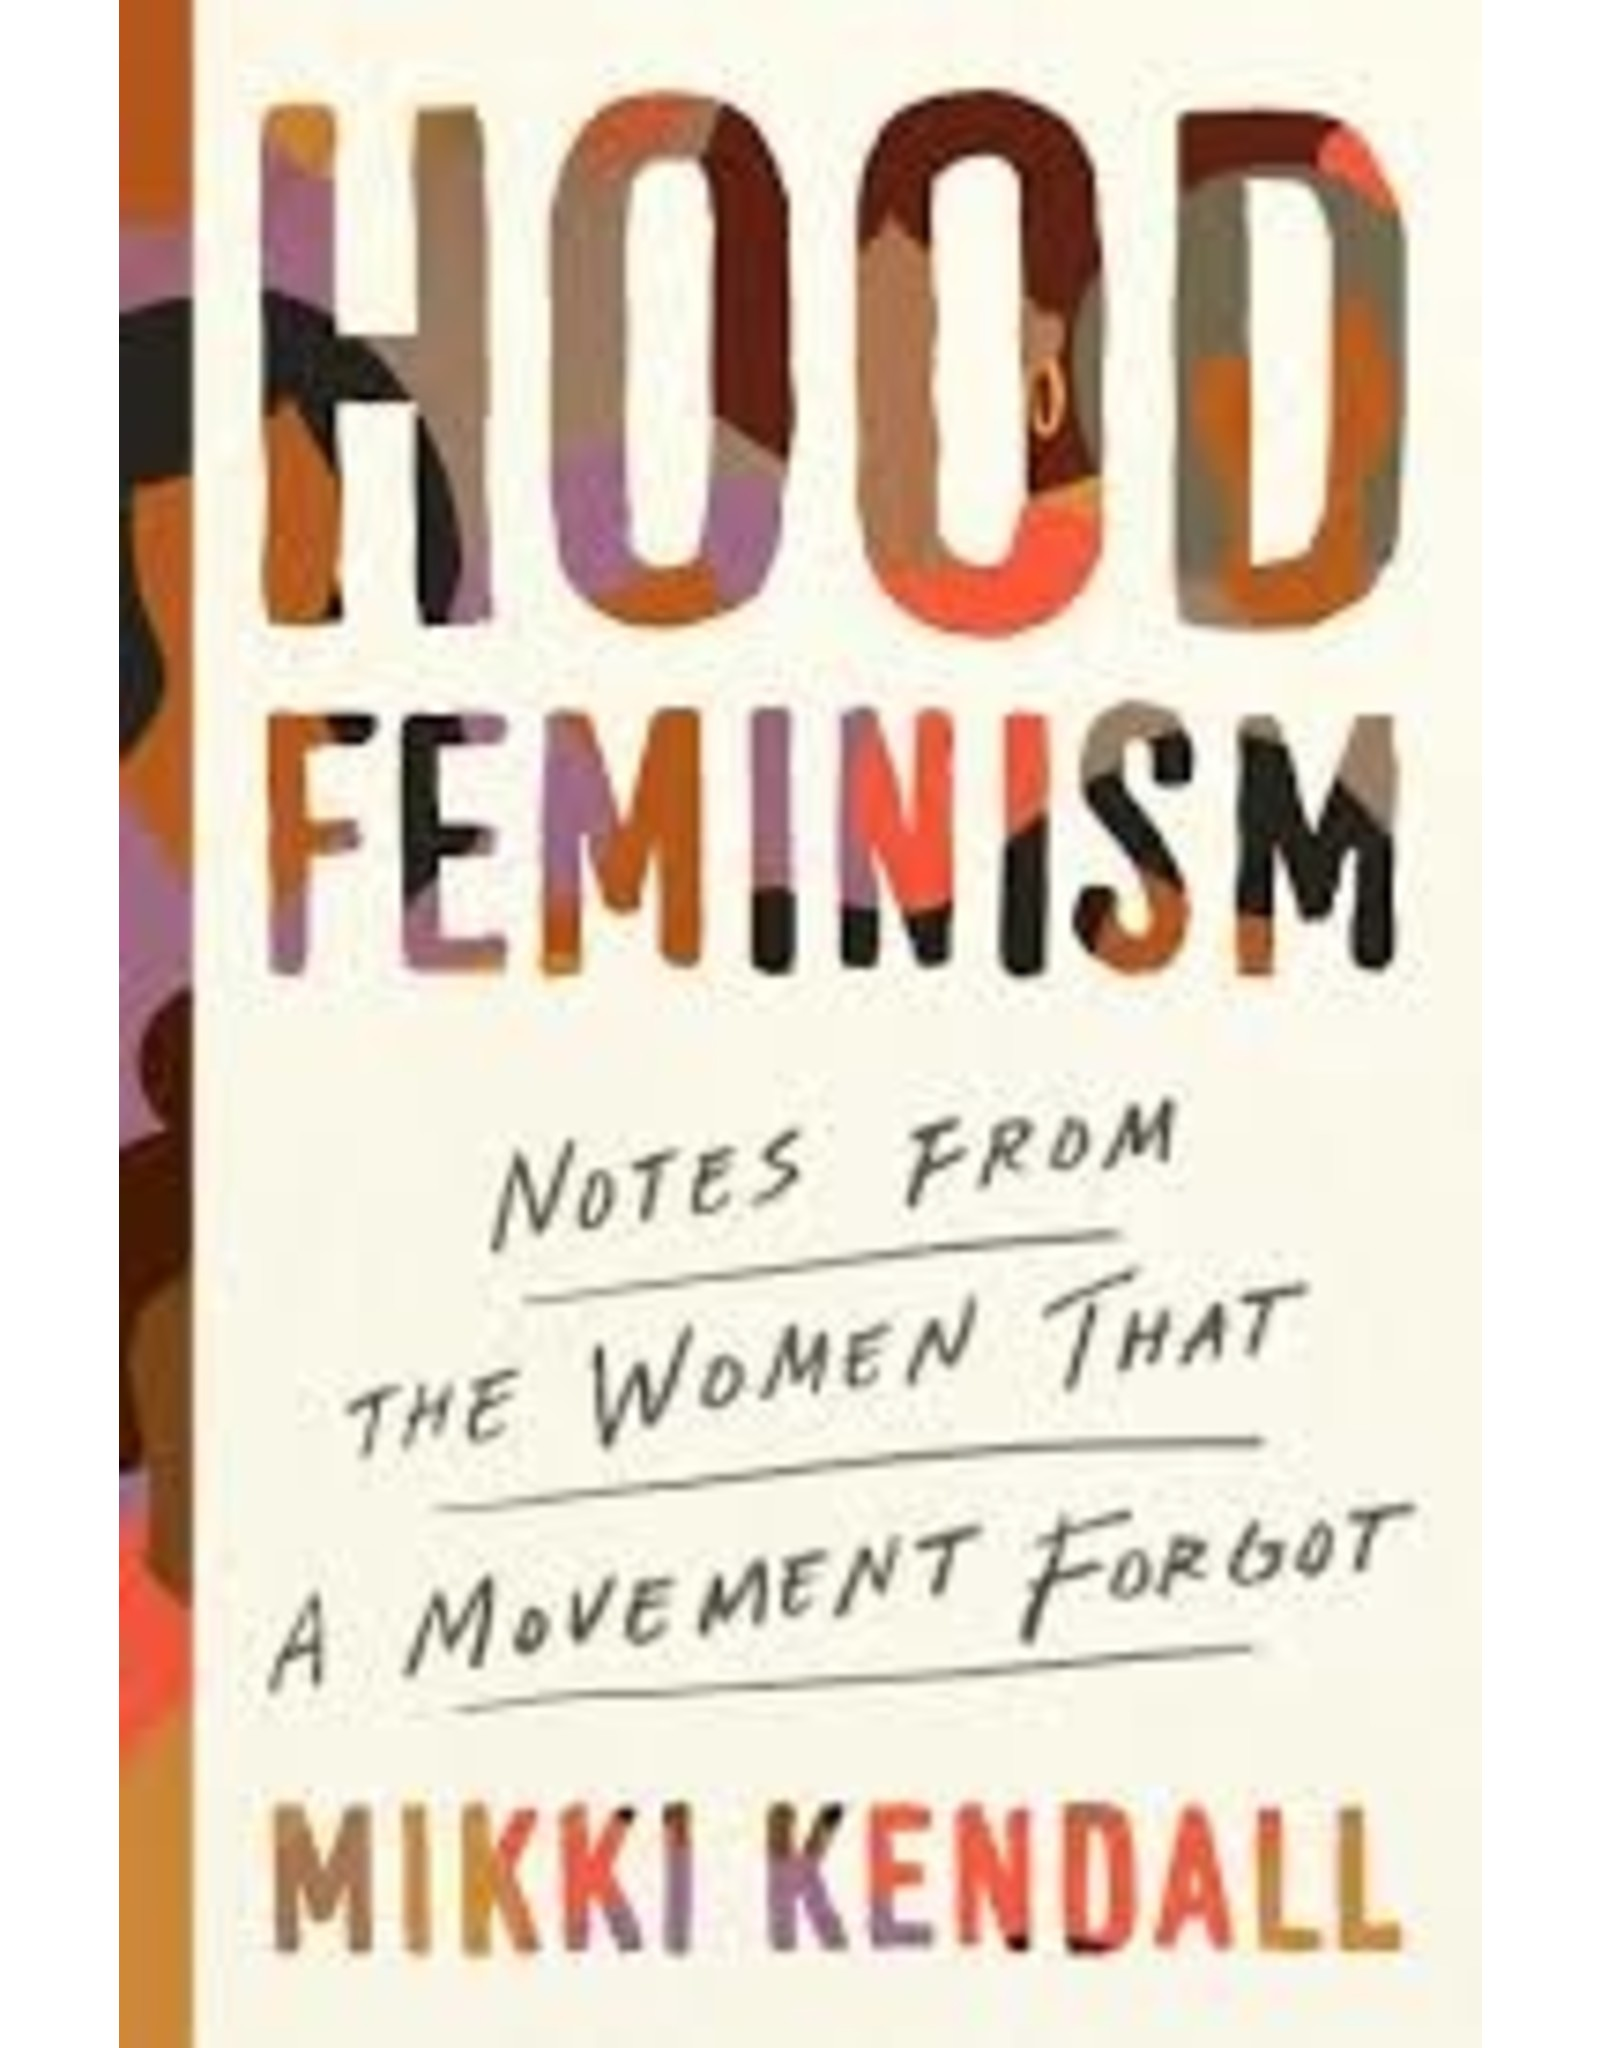 Books Hood Feminism: Notes from the Women that A Movement Forgot by Mikki Kendall